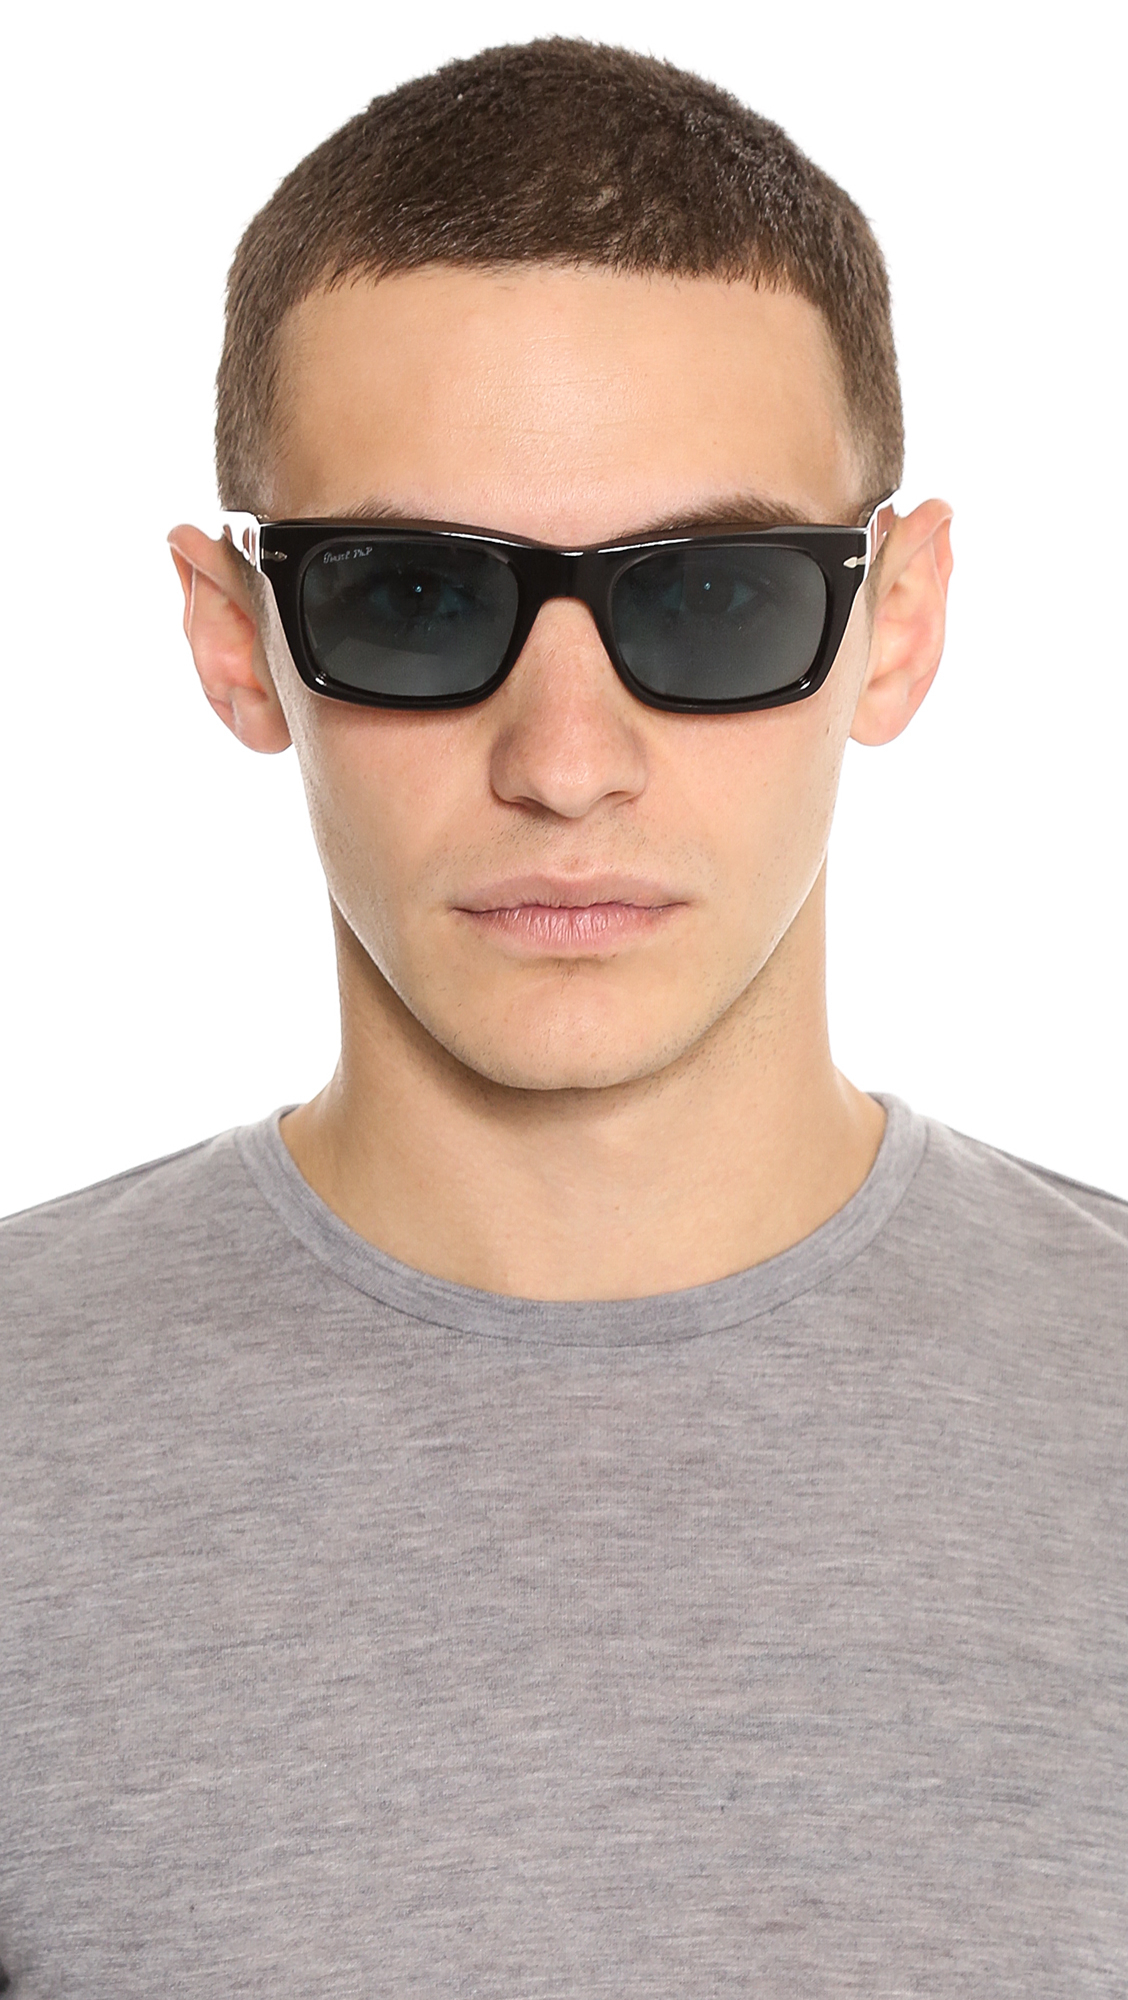 ce6acab0c13 Lyst - Persol Polarized Rectangular Sunglasses in Black for Men